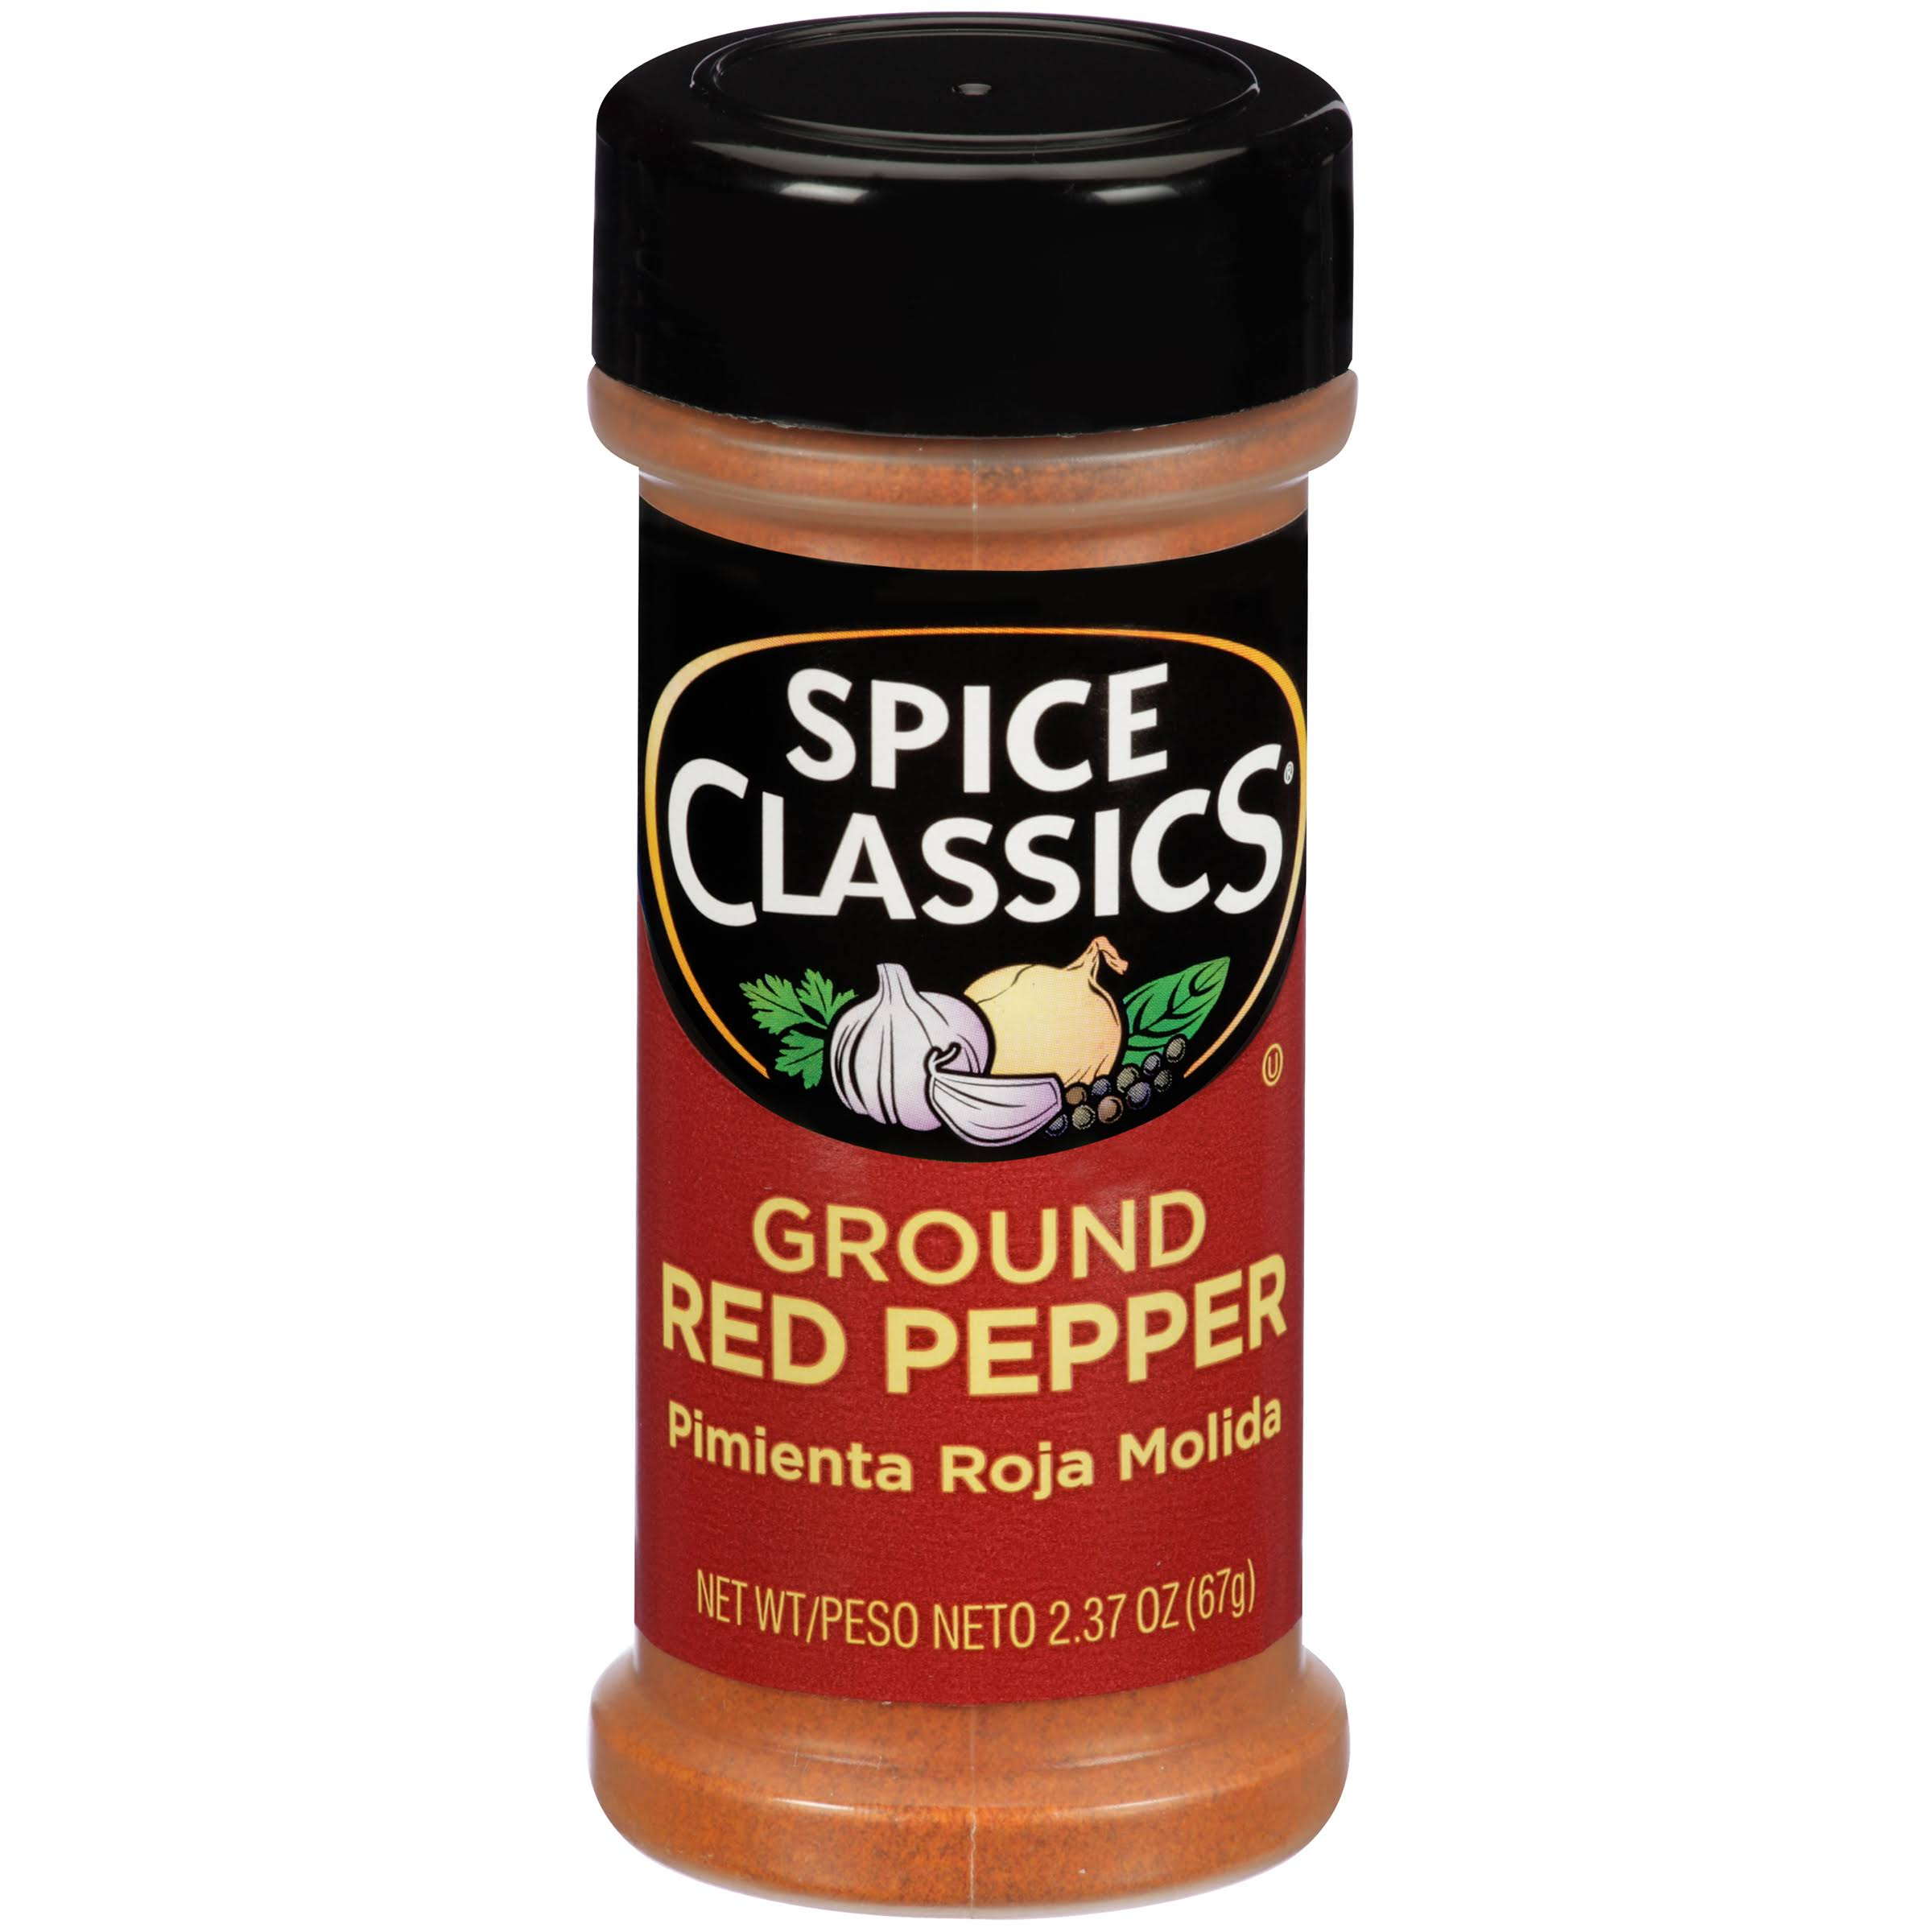 Spice Classics Ground Red Pepper, 2.37 oz